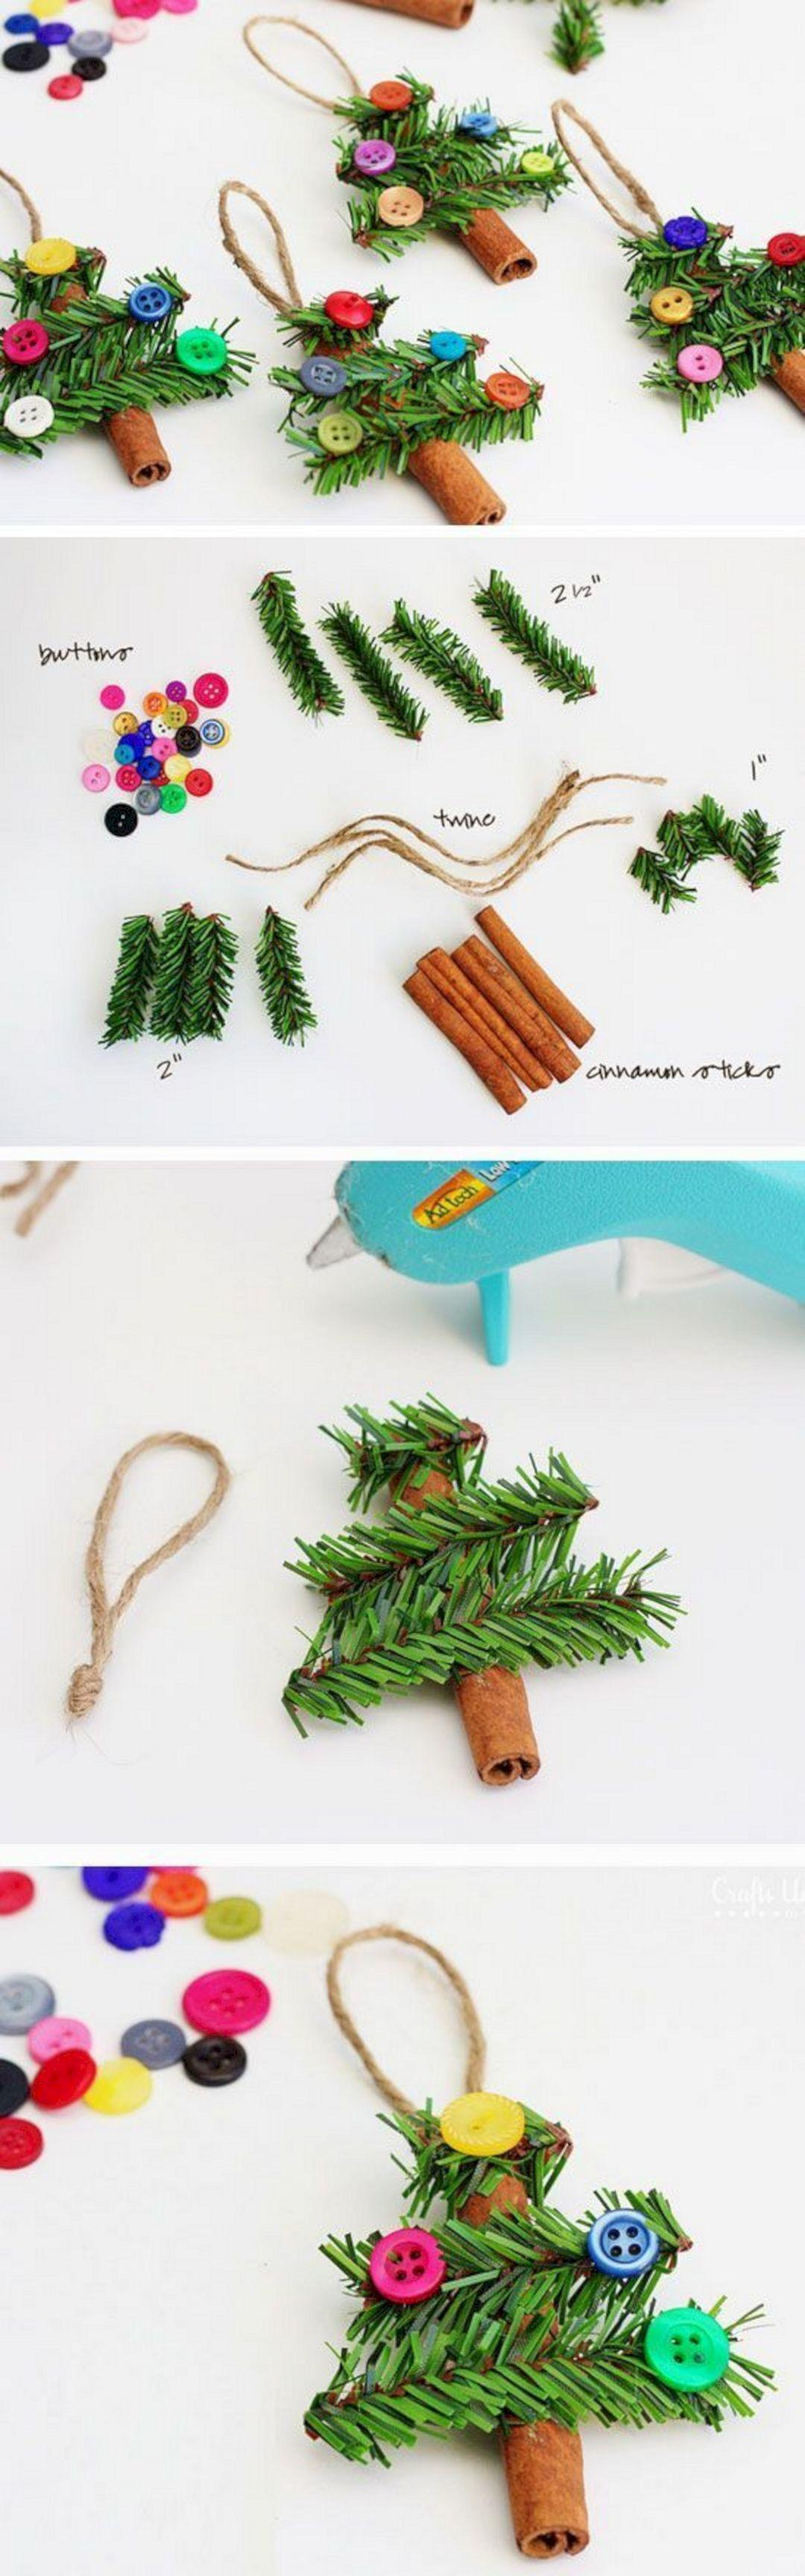 Easy Diy Christmas Crafts Ideas Your Kids 340 Montenr